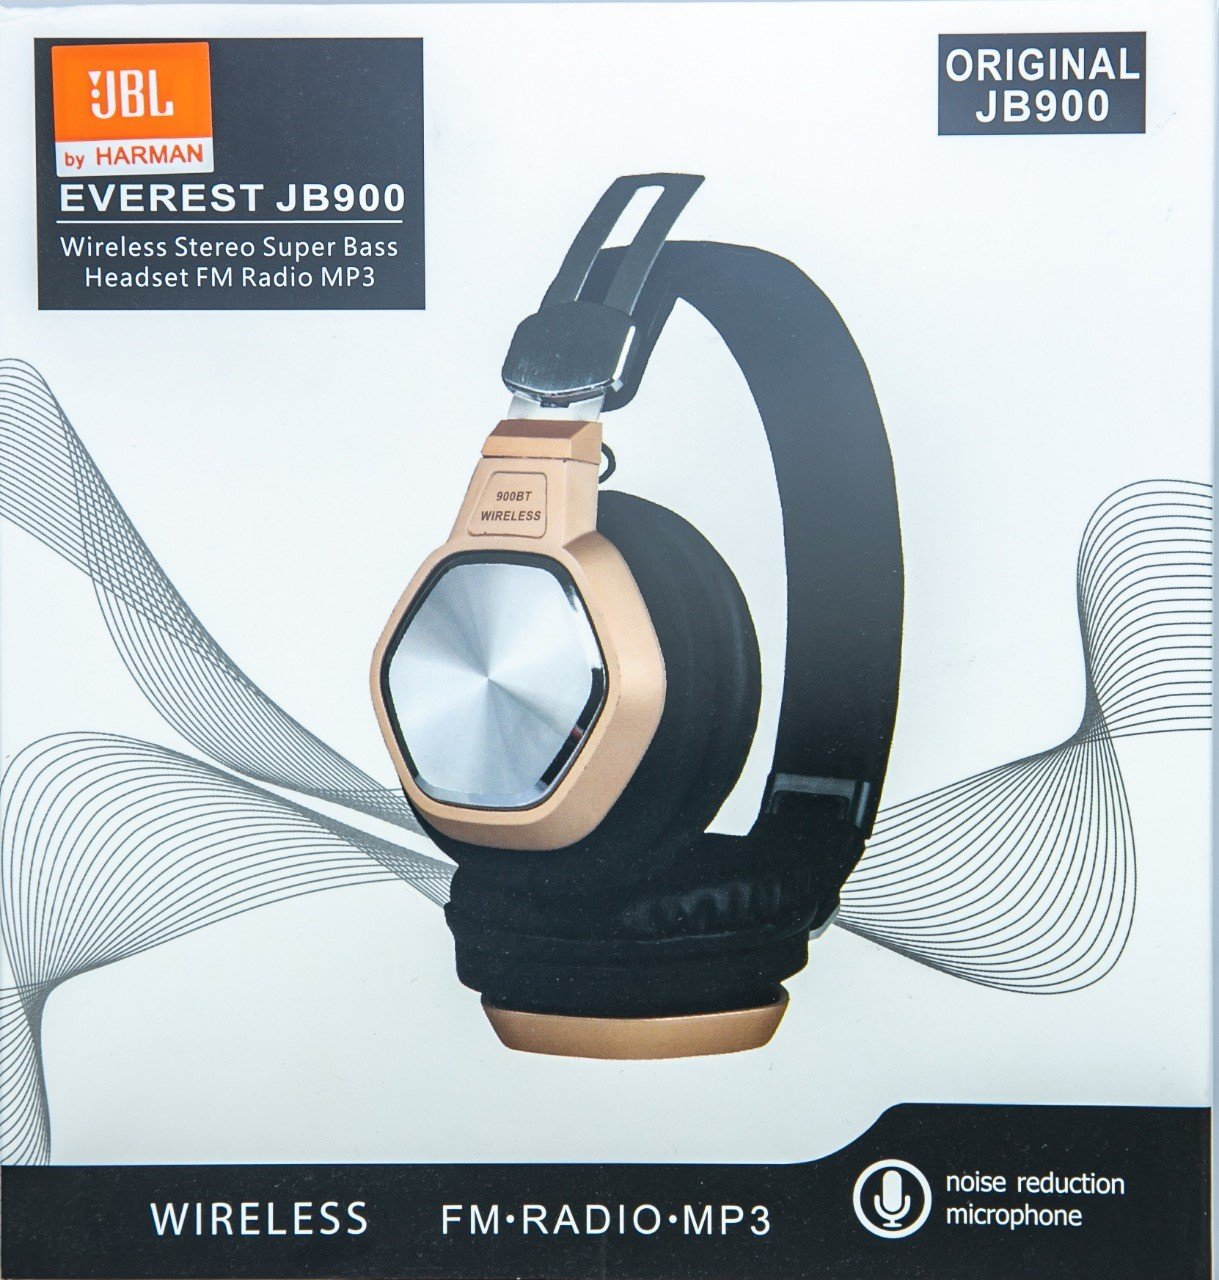 HEADPHONE BLUETOOTH JBL MICRO SD + FM RADIO + AUX + MIC - JB900 - COLOR ,Smartphones & Tab Headsets